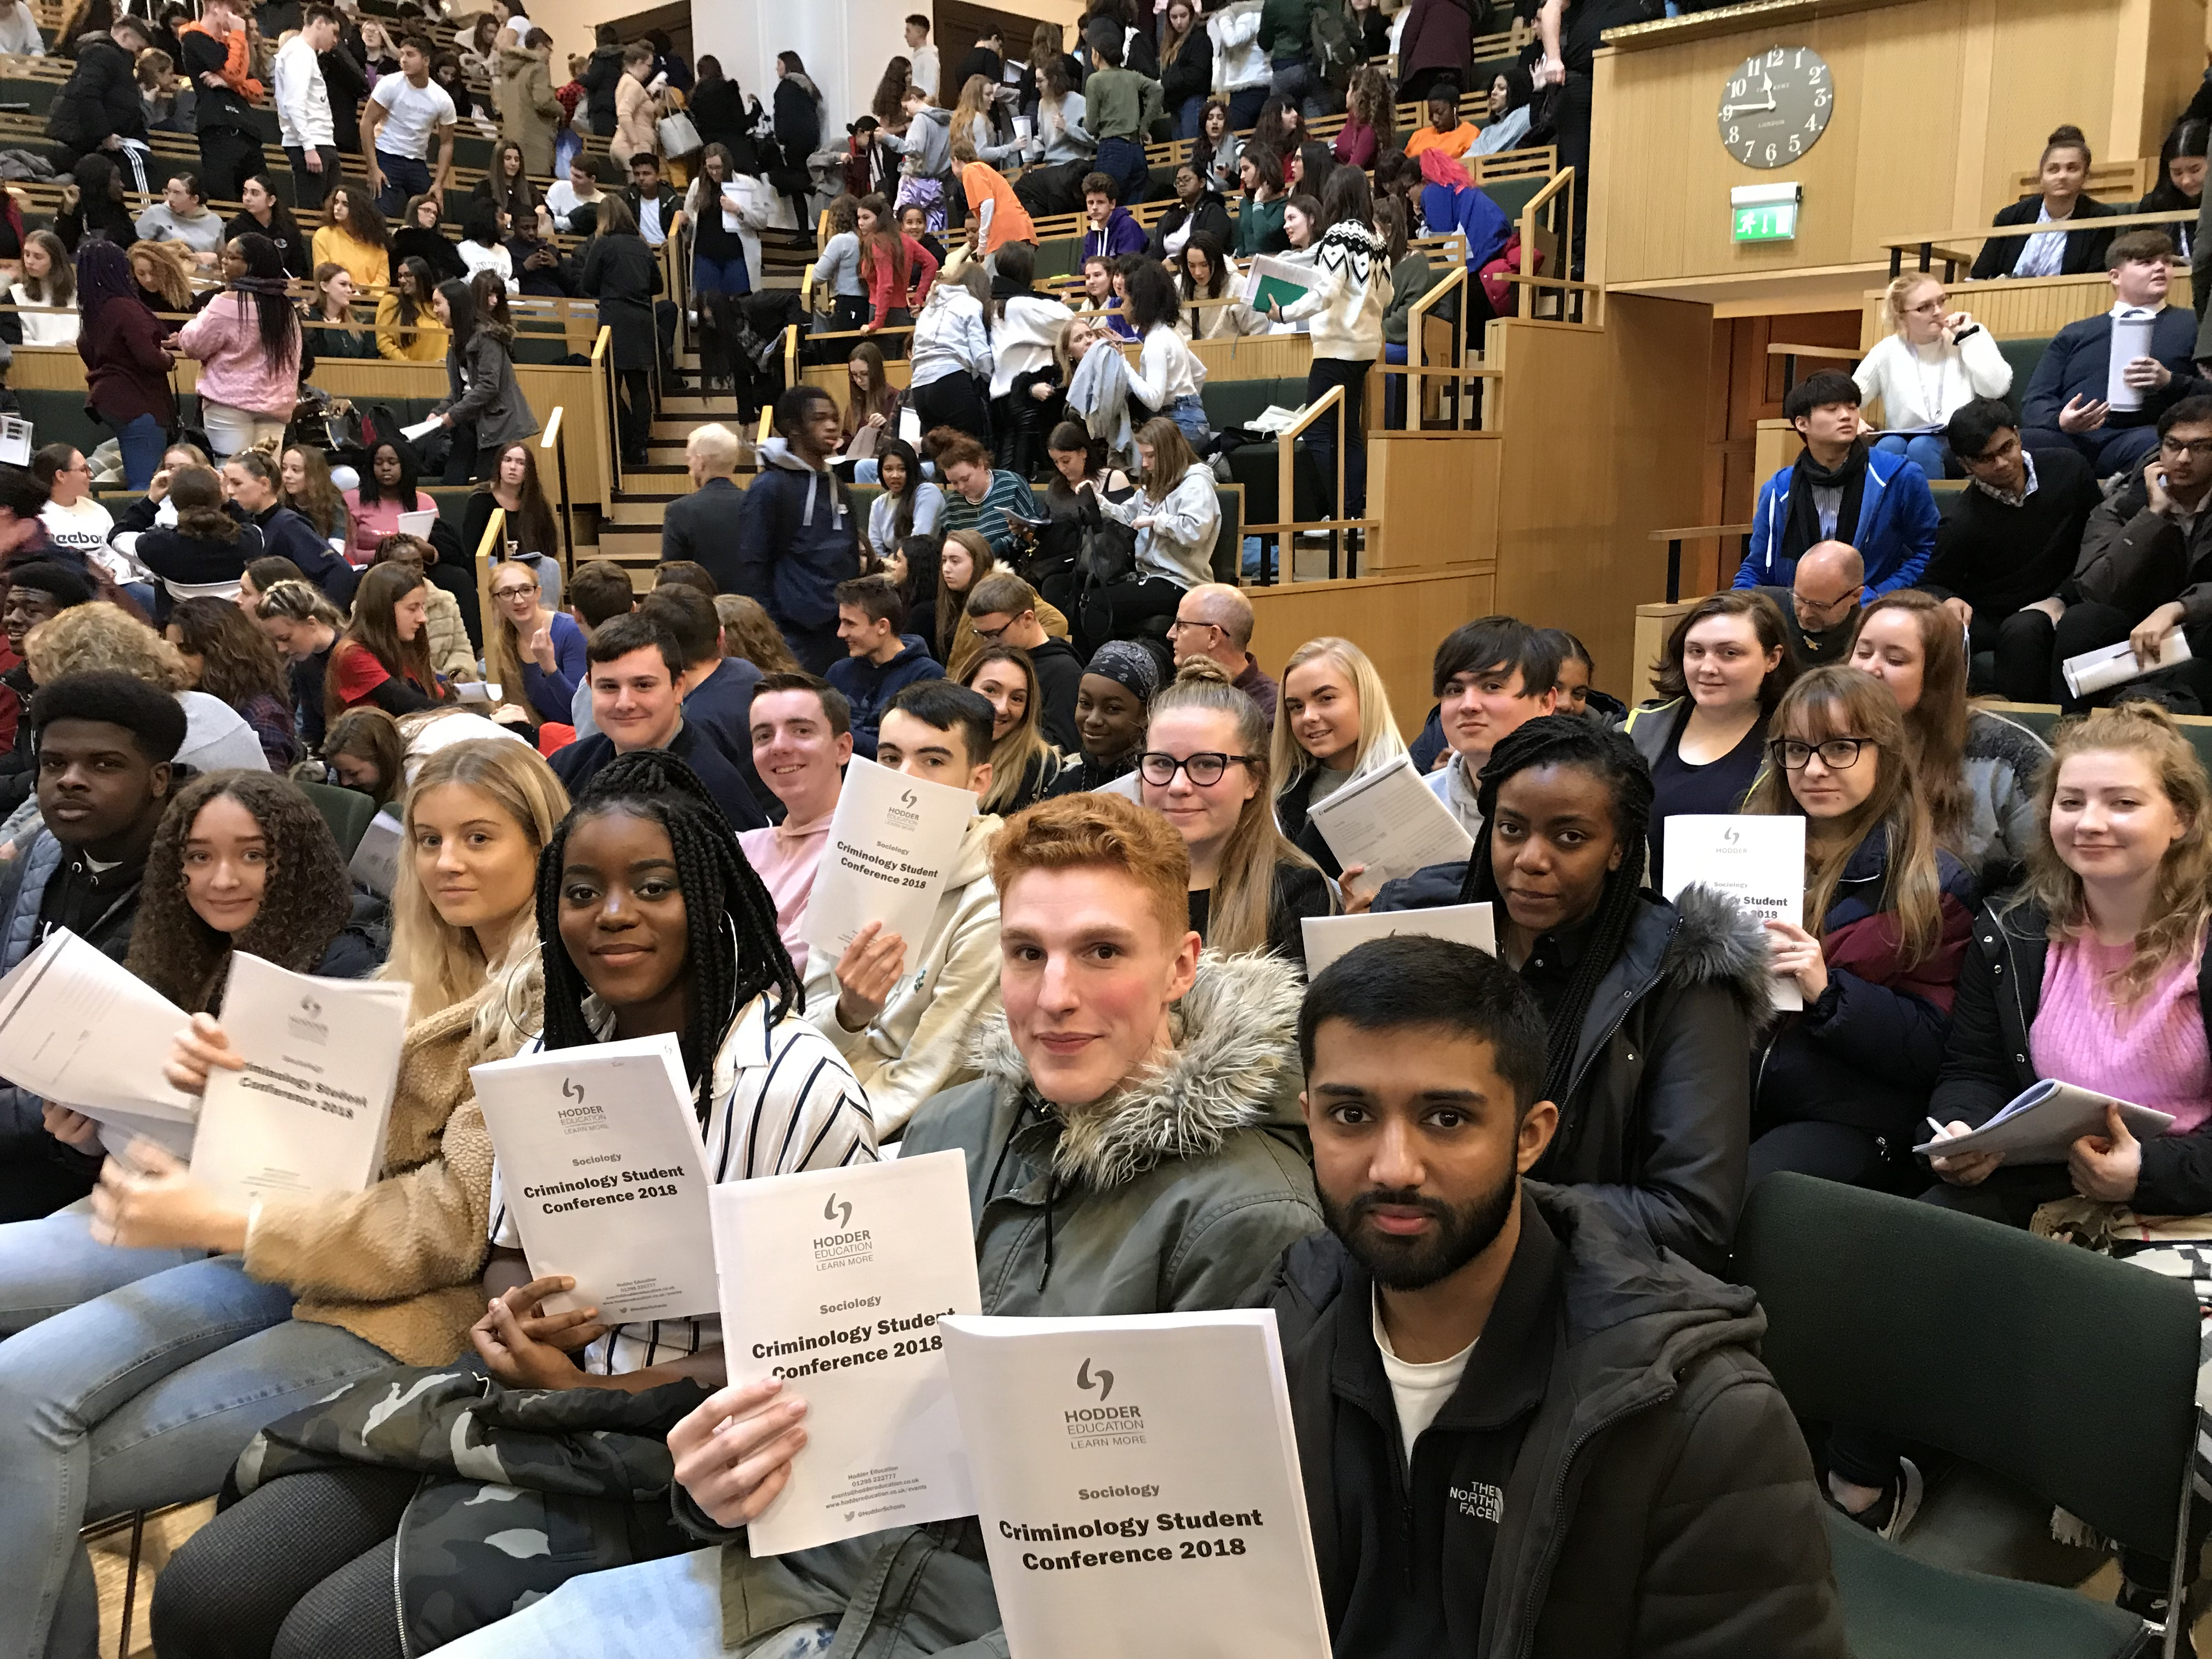 A-Level students attend Criminology Conference with Educational Visit Grant